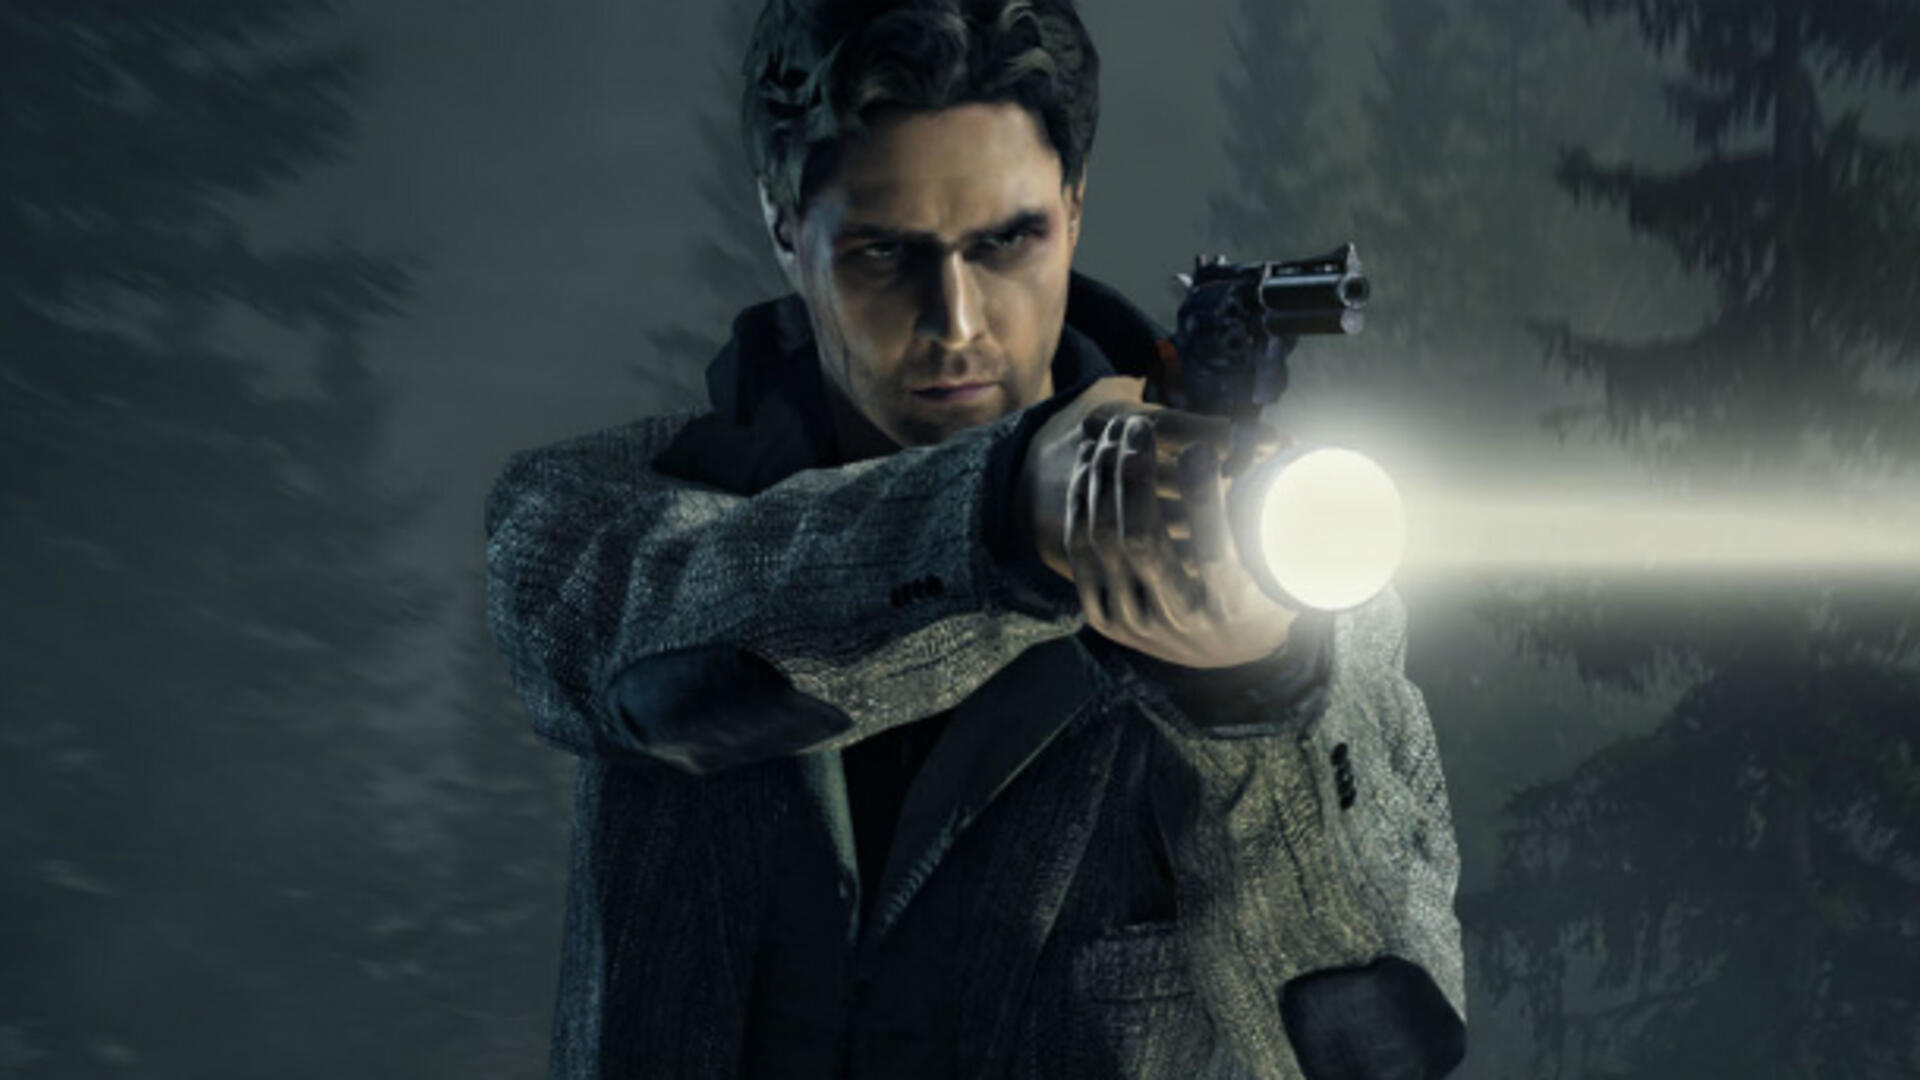 Alan Wake Makes a Surprise Return to Steam After Long Absence